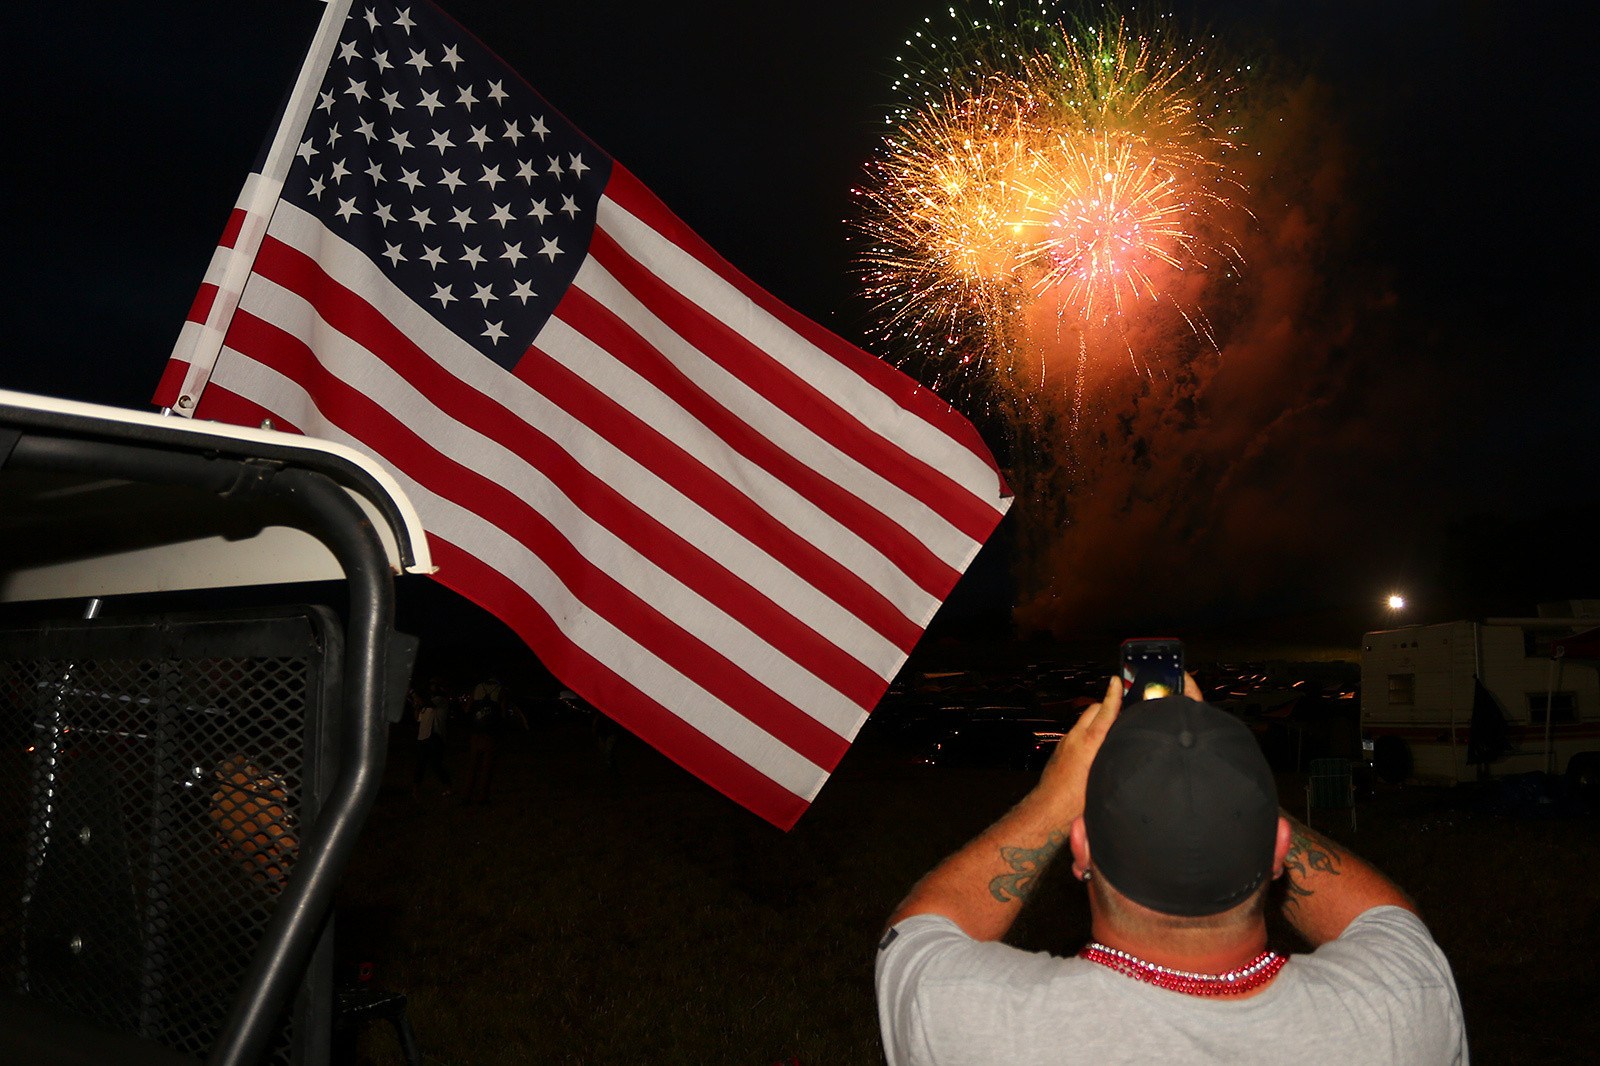 Nightly fireworks show? Yep, they've got that covered.